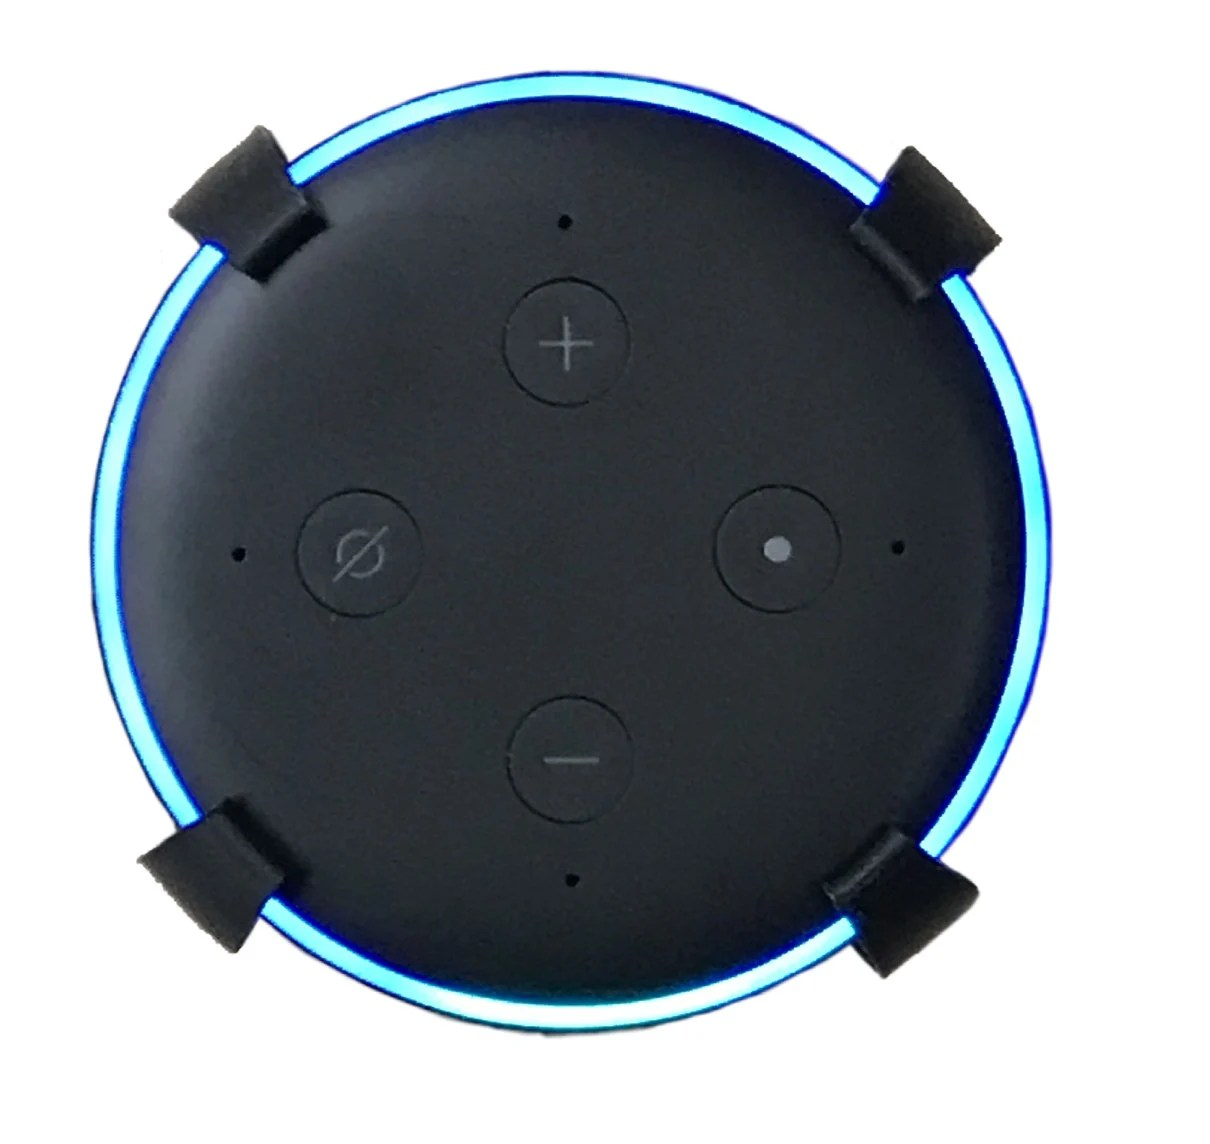 Echo Dot Installation Sturdygrip Amazon Echo Dot 3rd Generation Wall Mount Ceiling Mount